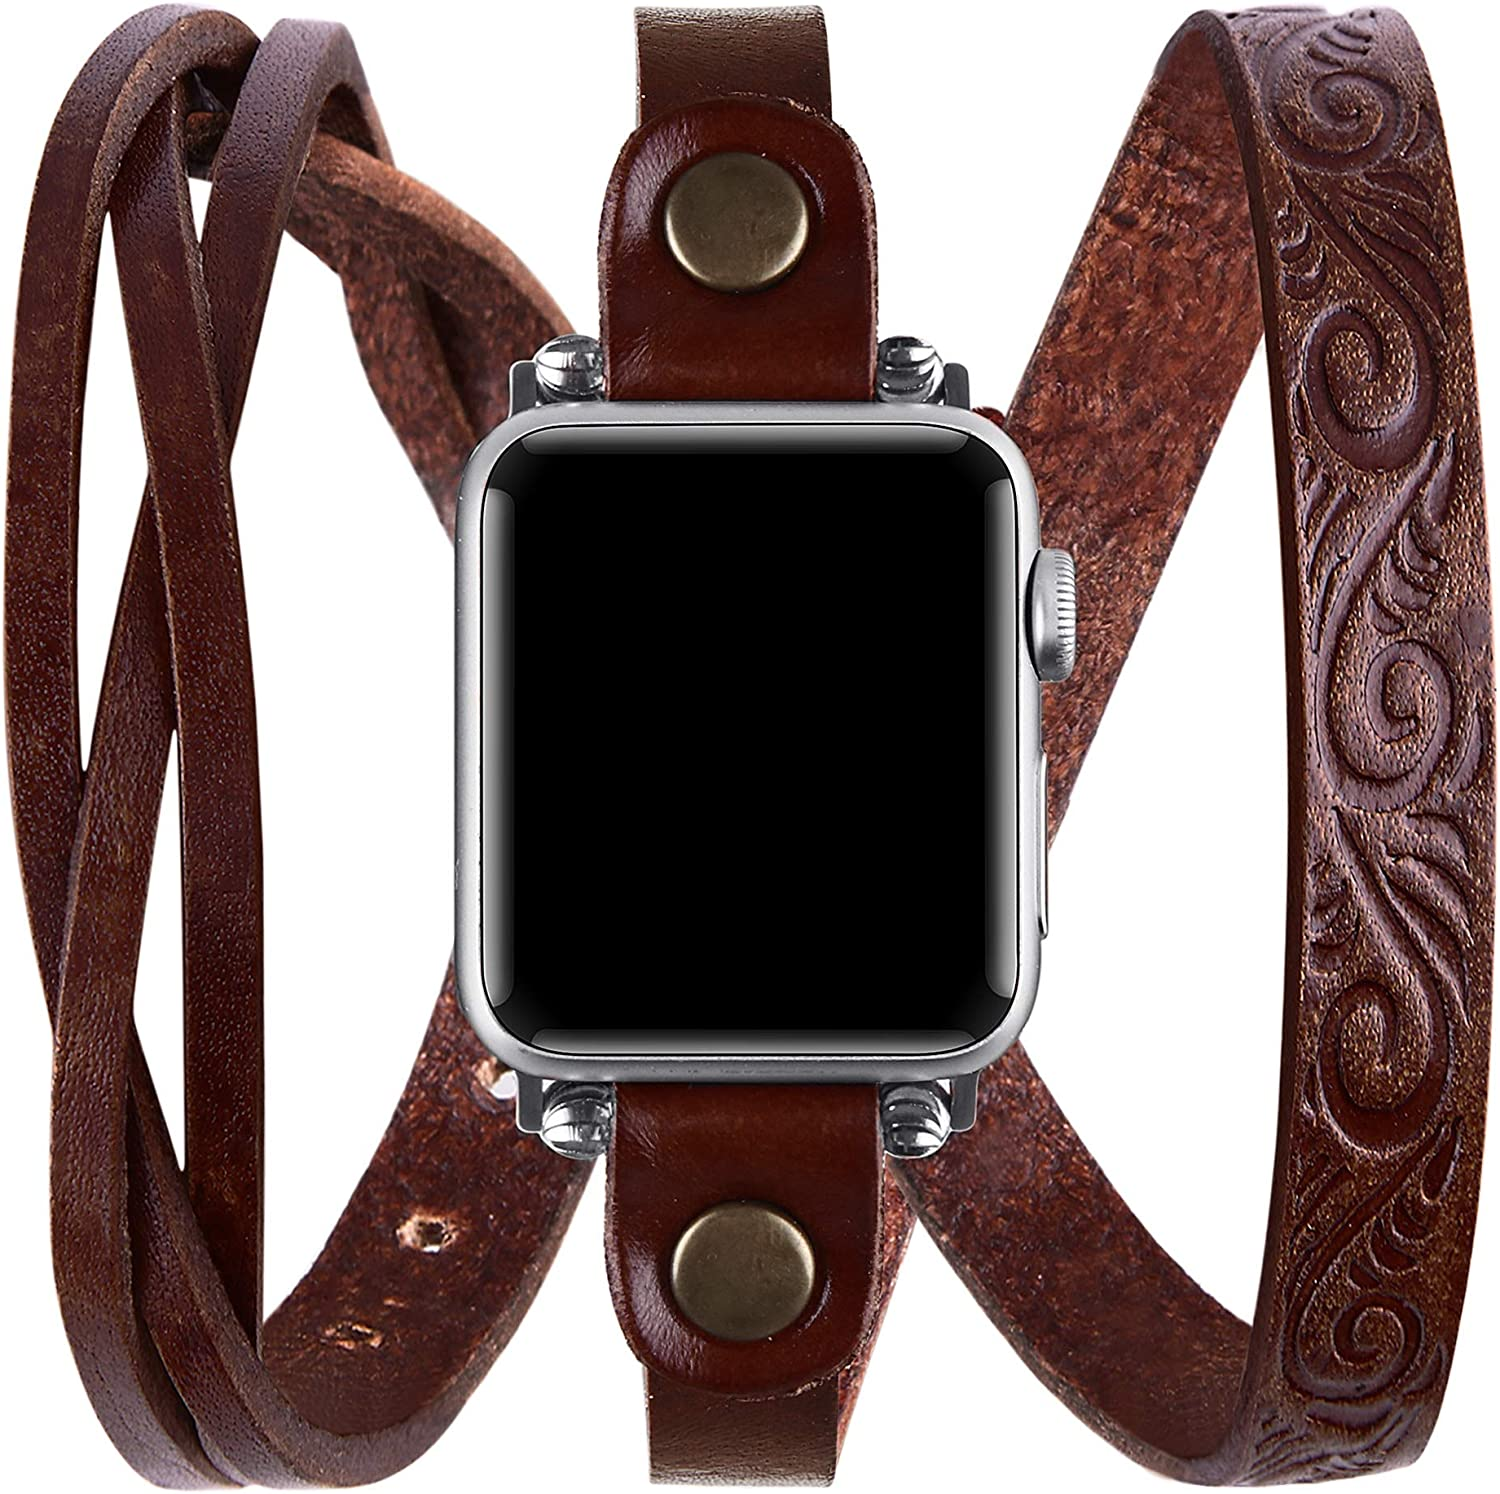 Vikoros Leather Double Wrap Band Compatible for Apple Watch 38mm 40mm 42mm 44mm Iwatch Series 6/5/4/3 Womens, Cool Woven Leather Bracelet Design Watch Bands Strap Compatible with Apple Watch SE